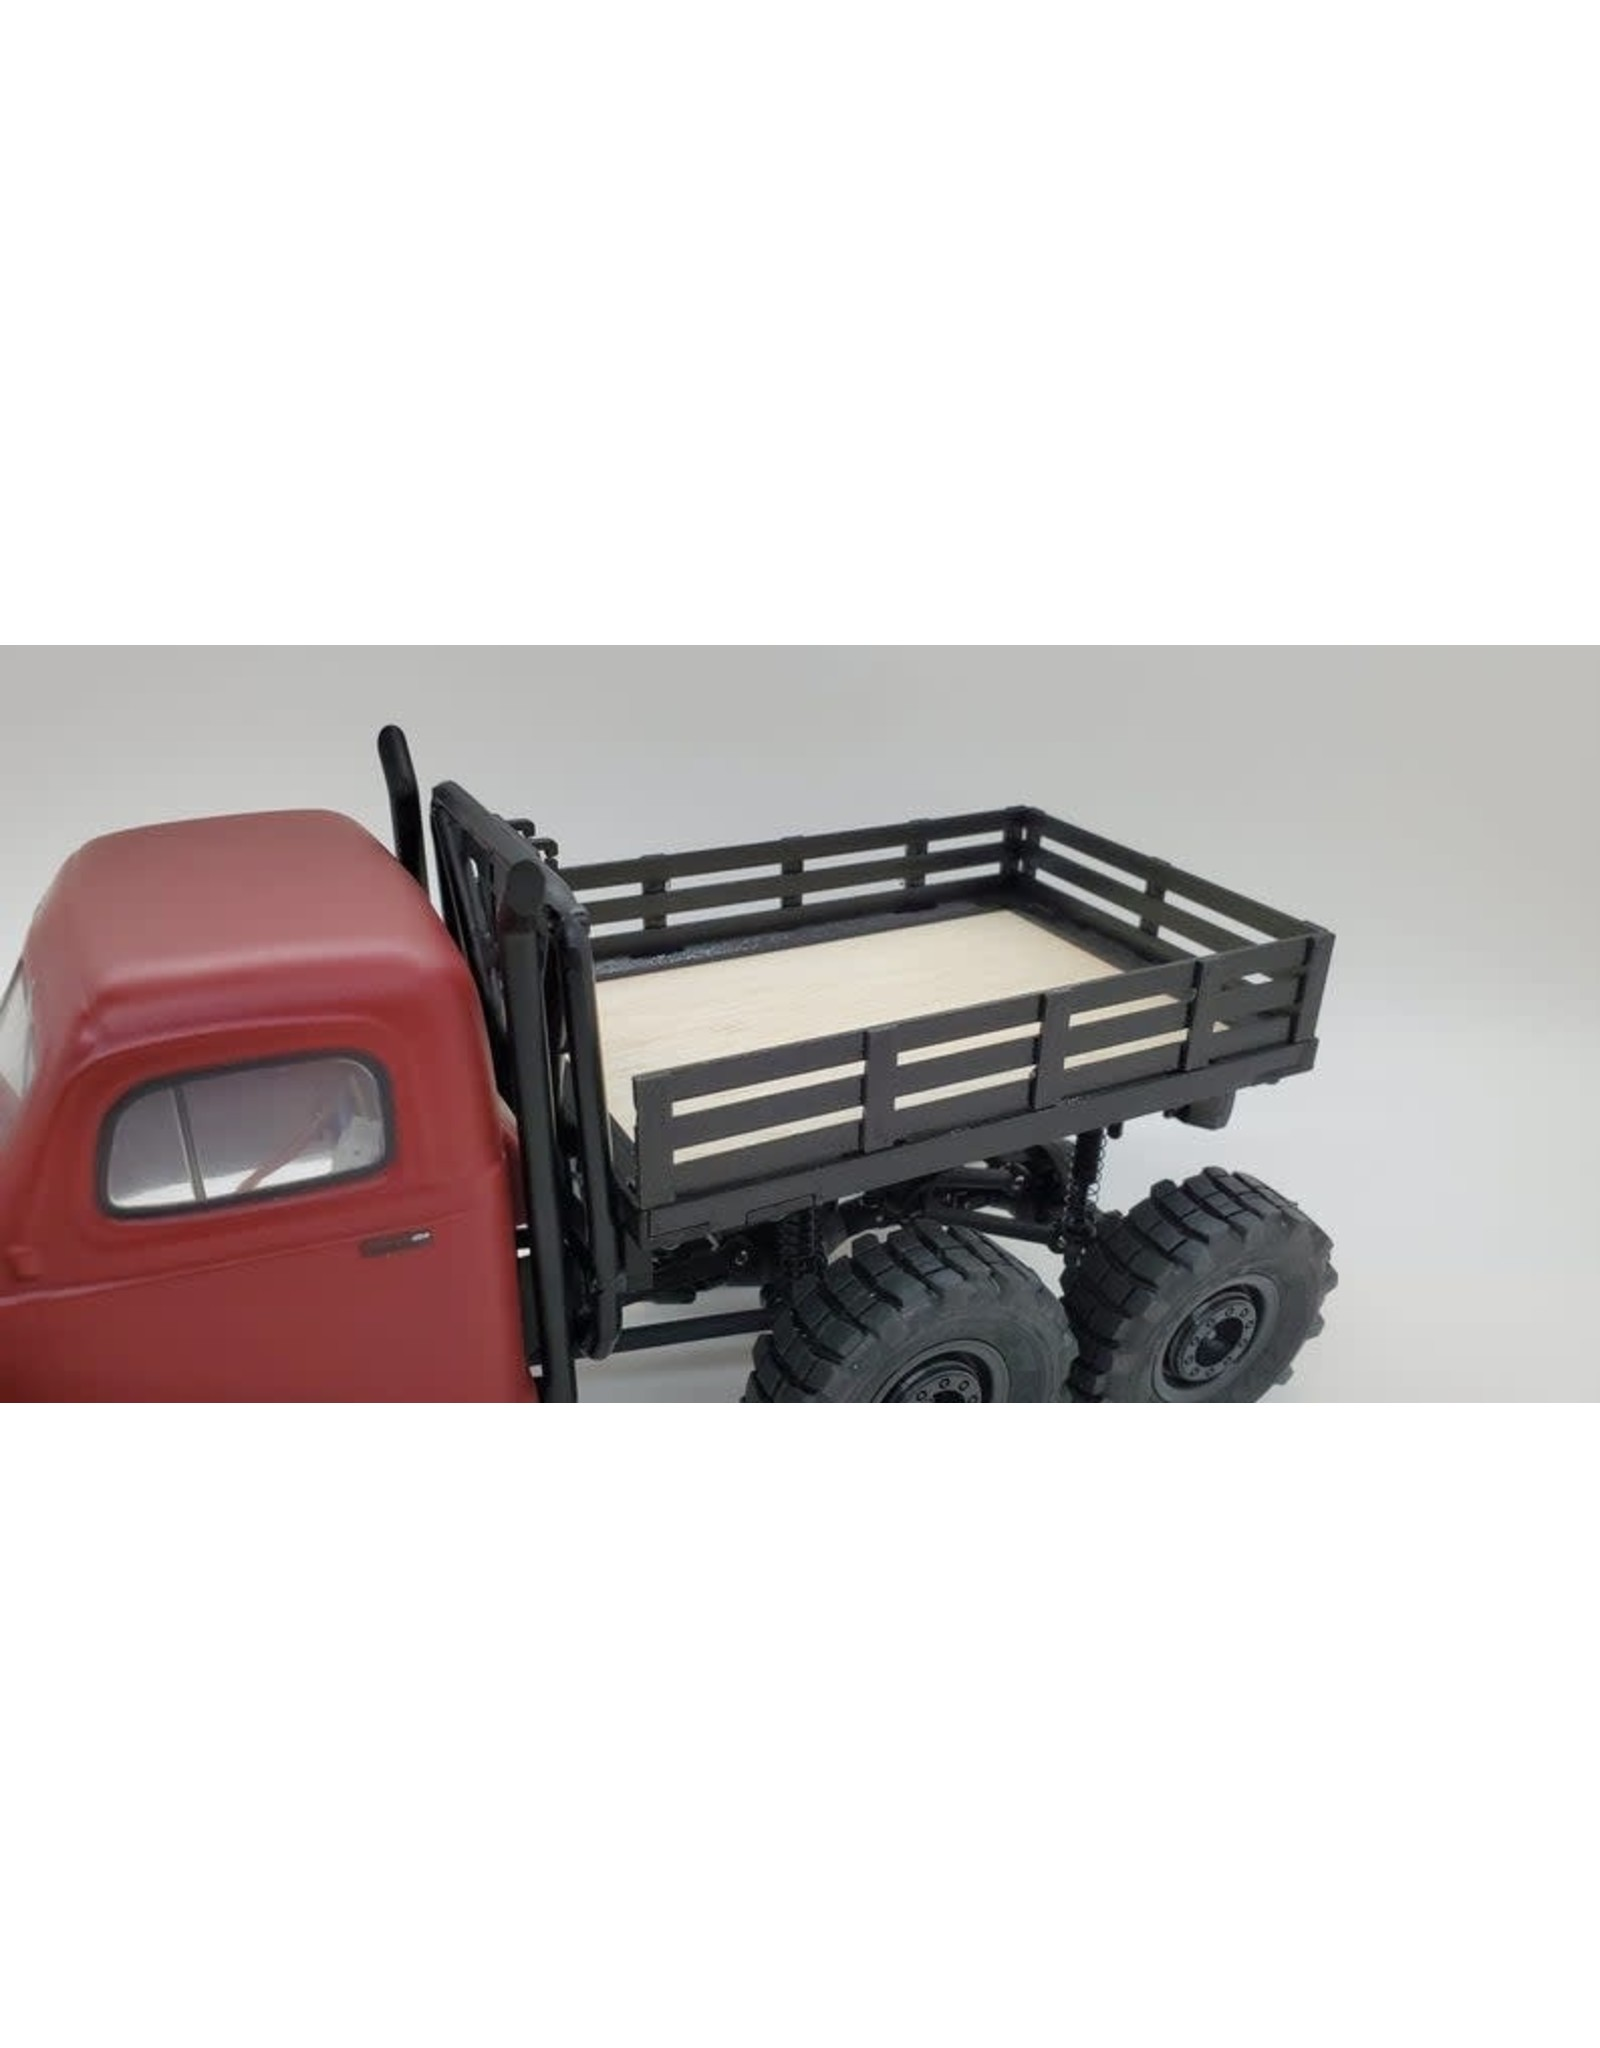 Flatbed conversion Kit for FMS Atlas 6x6 Truck Crawler